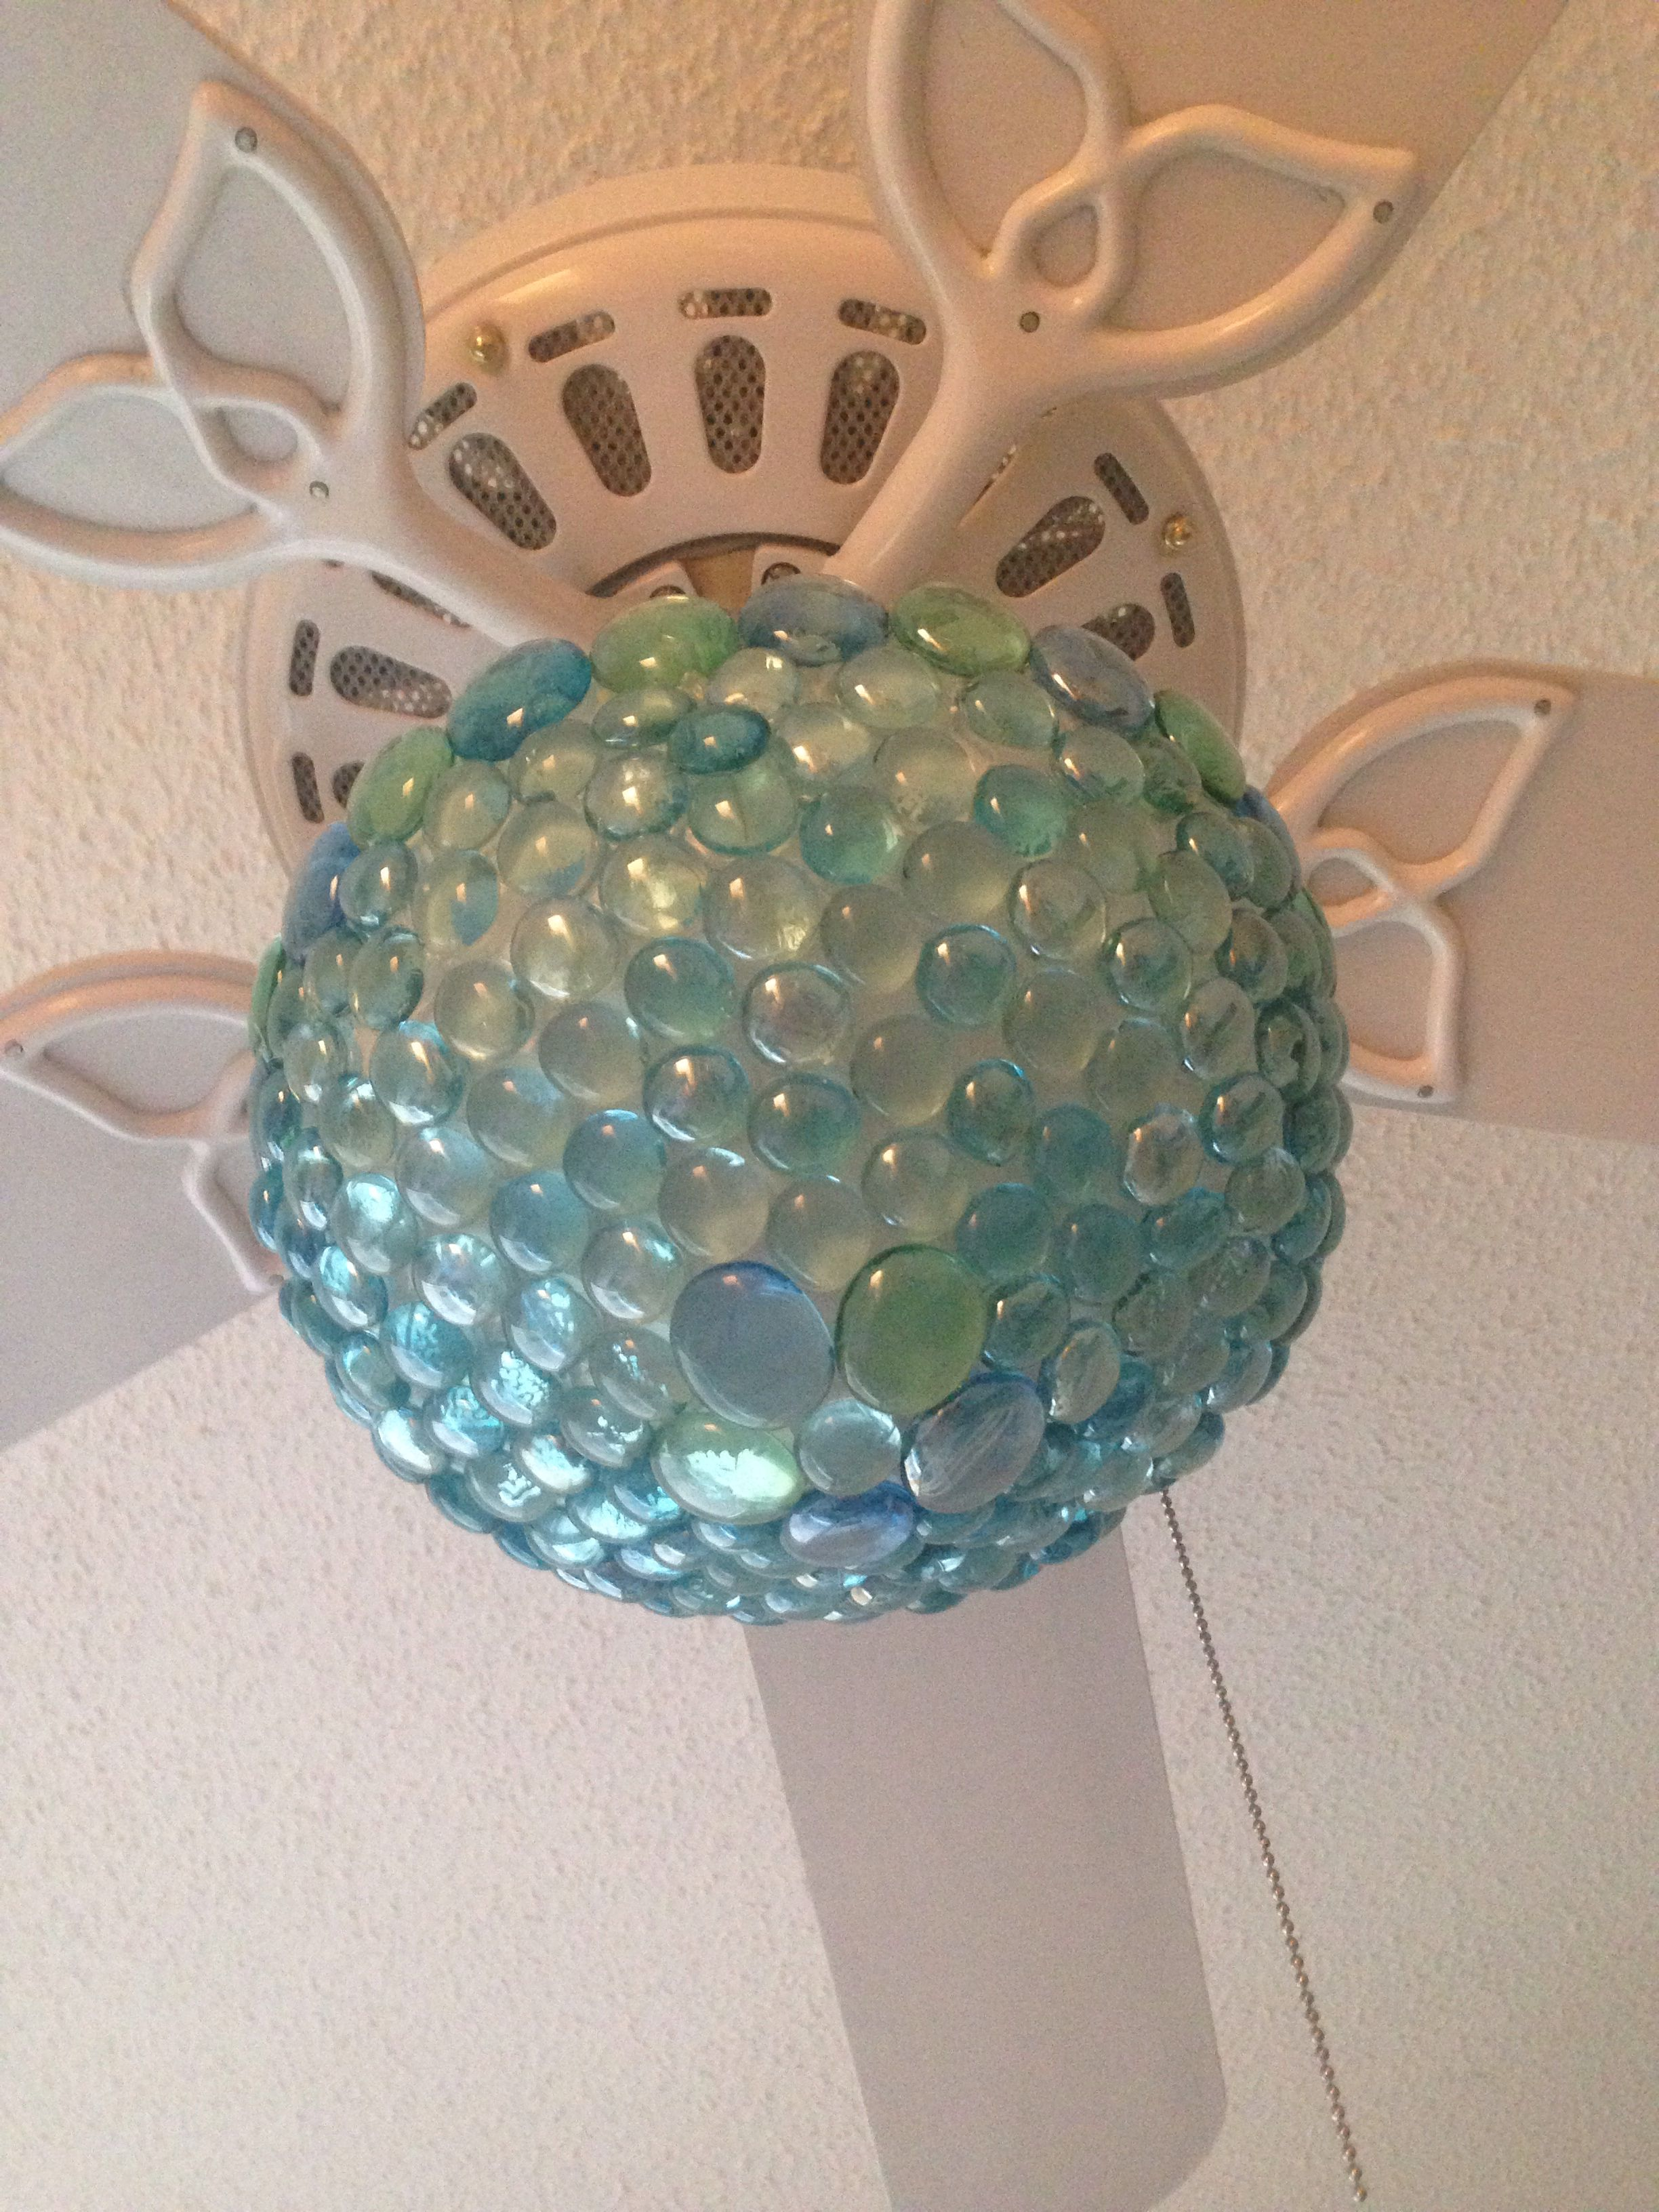 Turquoise Aqua Ceiling Fan Light Globe After Diy Makeover With Aqua Glass Pebbles From The Doll Ceiling Fan Makeover Diy Ceiling Fan Ceiling Fan Light Globes